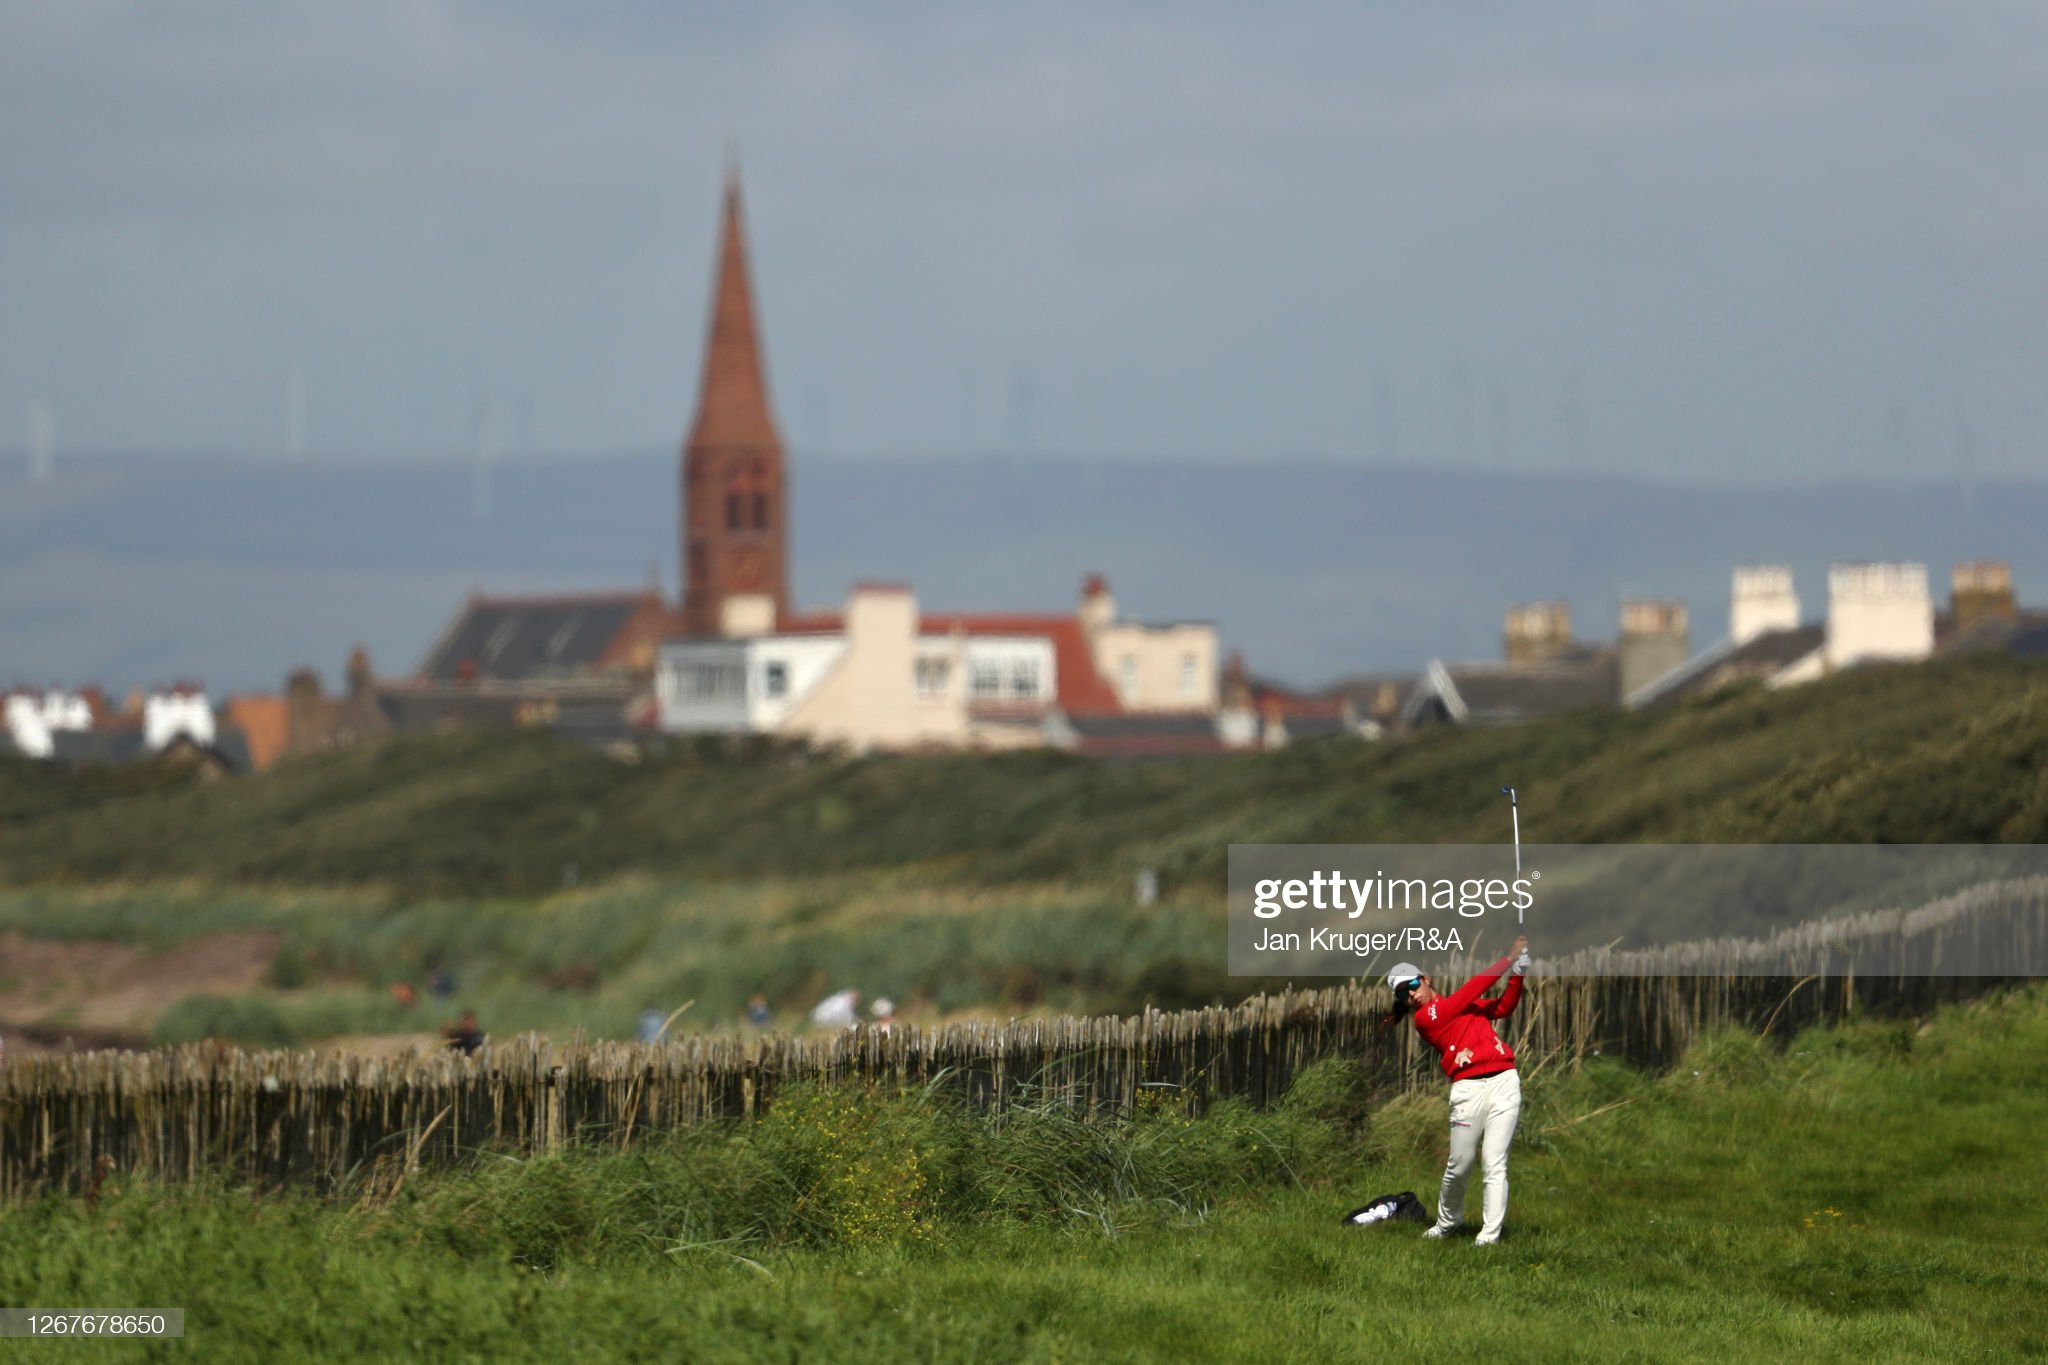 https://media.gettyimages.com/photos/mi-hyang-lee-of-south-korea-plays-a-shot-on-the-1st-hole-during-day-picture-id1267678650?s=2048x2048